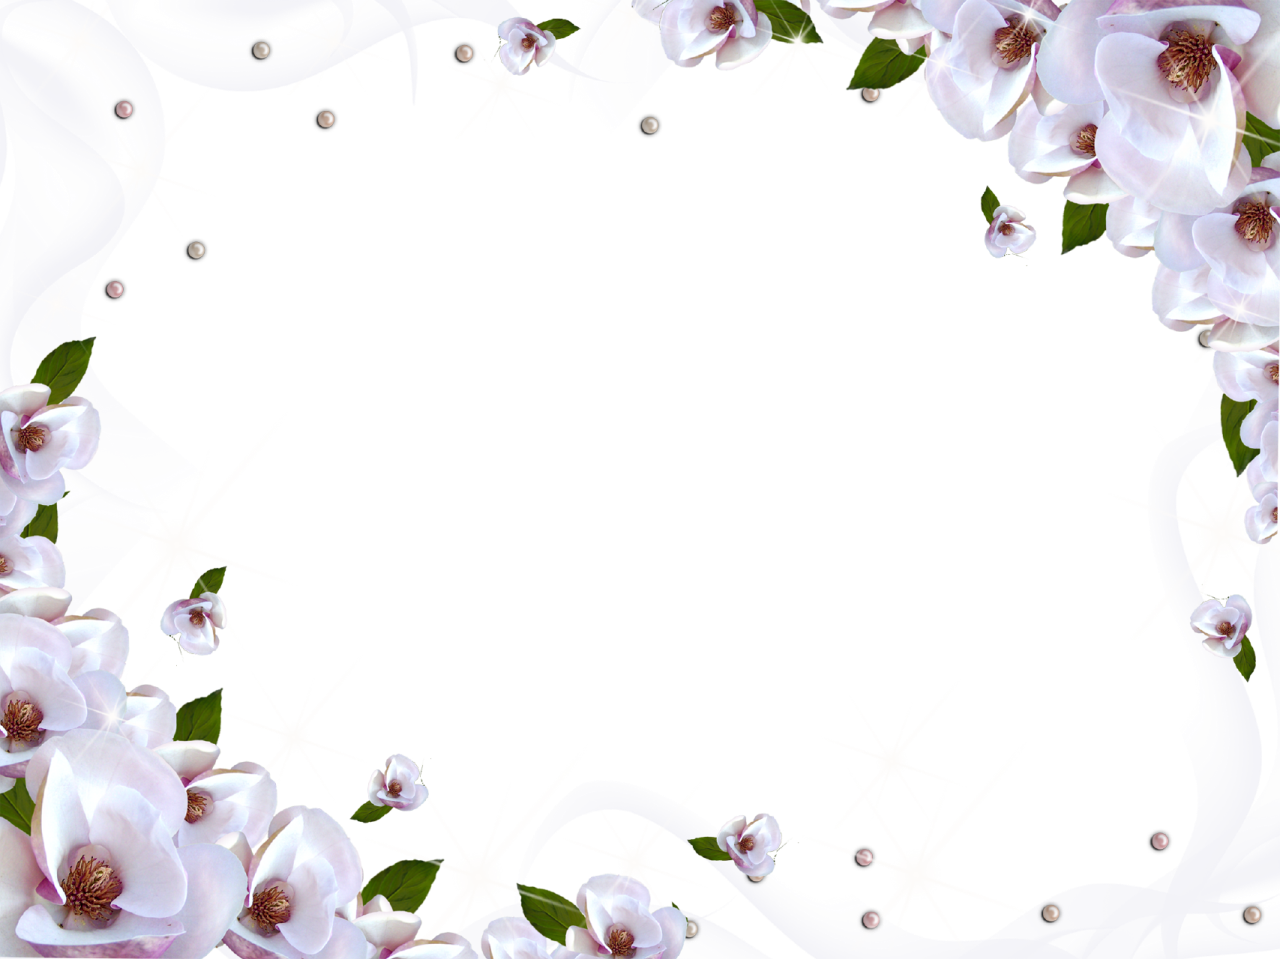 White Flower Frame Wallpaper Download Free Image PNG Image